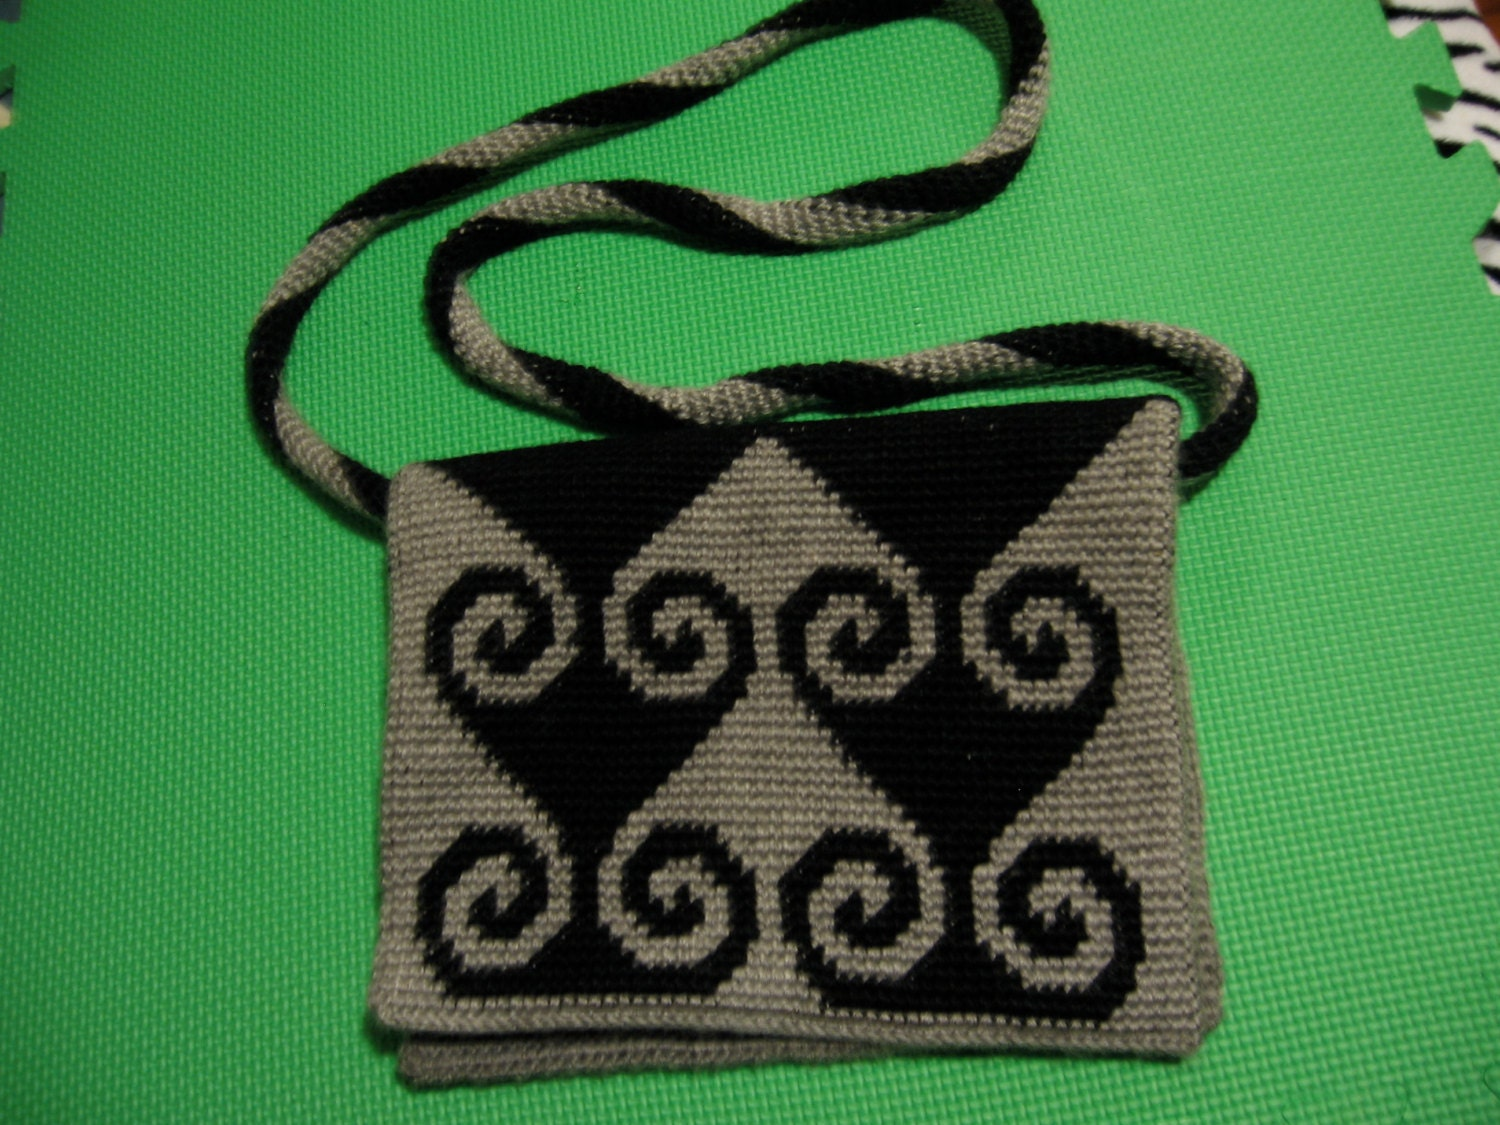 Tapestry Crochet Bag : Pattern for Messenger Bag in Tapestry Crochet by penelopescrochet